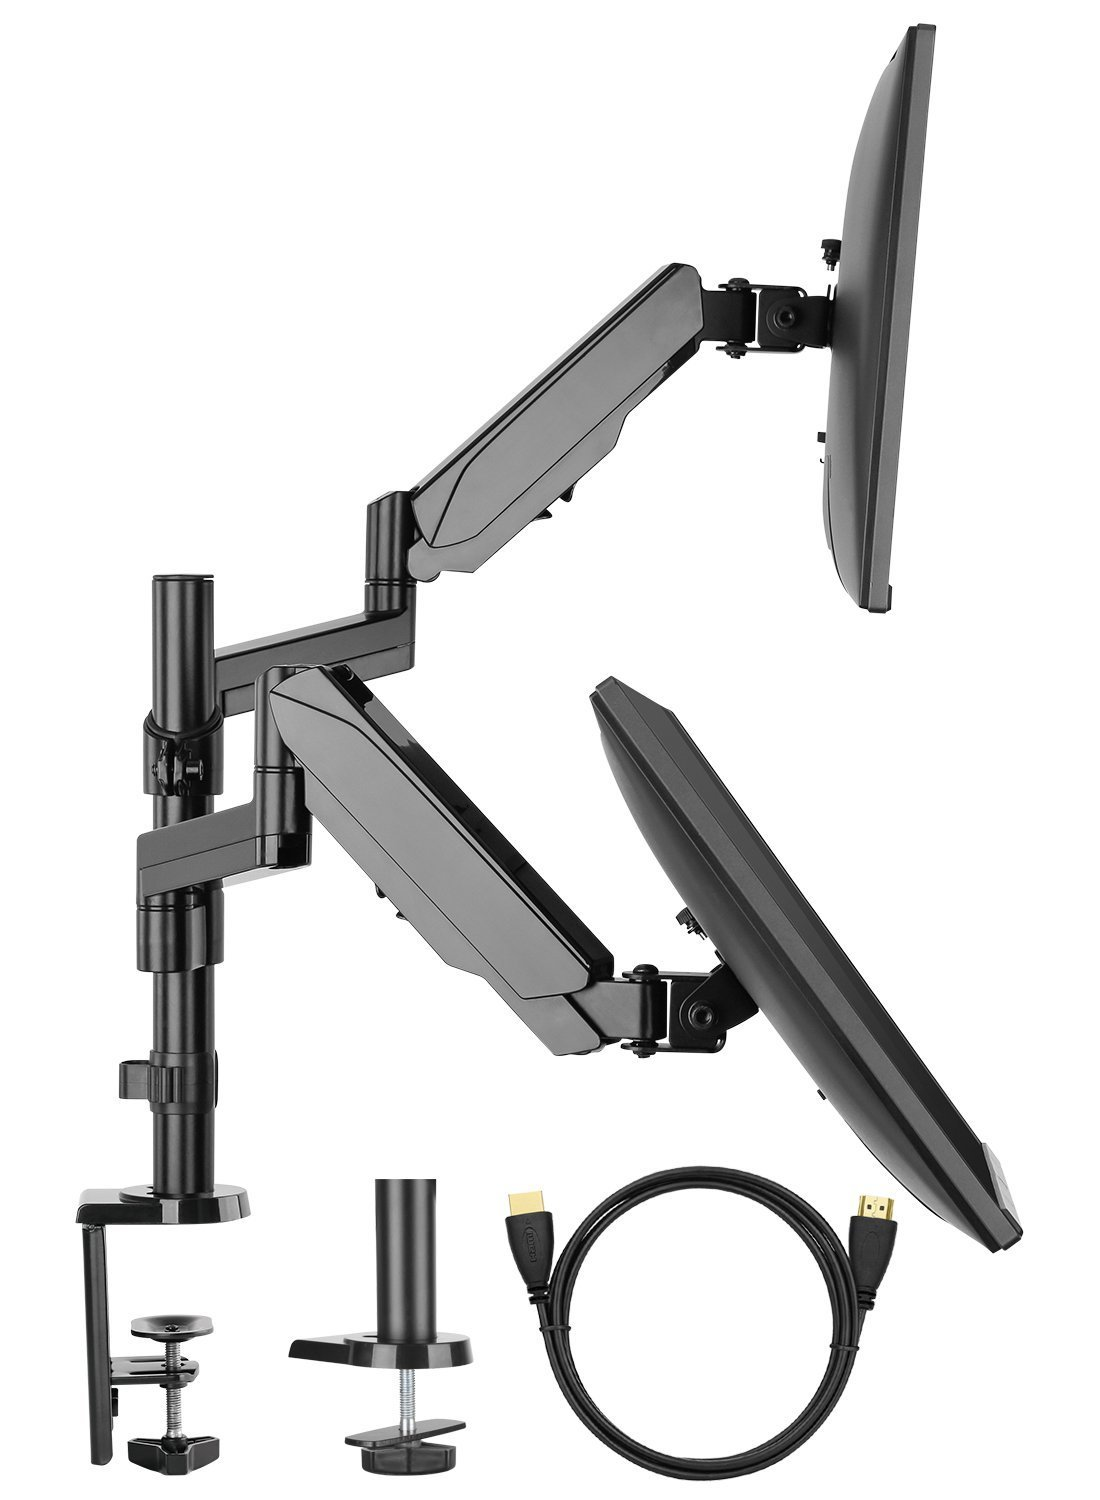 【Gas Spring】Dual Arm Monitor Stand, HUANUO Full Motion Adjustable Monitor Mount Riser with C Clamp/Grommet Base for Two 17 to 32 inch LCD Computer Screens, Each Arm Holds up to 8kg, Bonus HDMI Cable HNDSK2-E